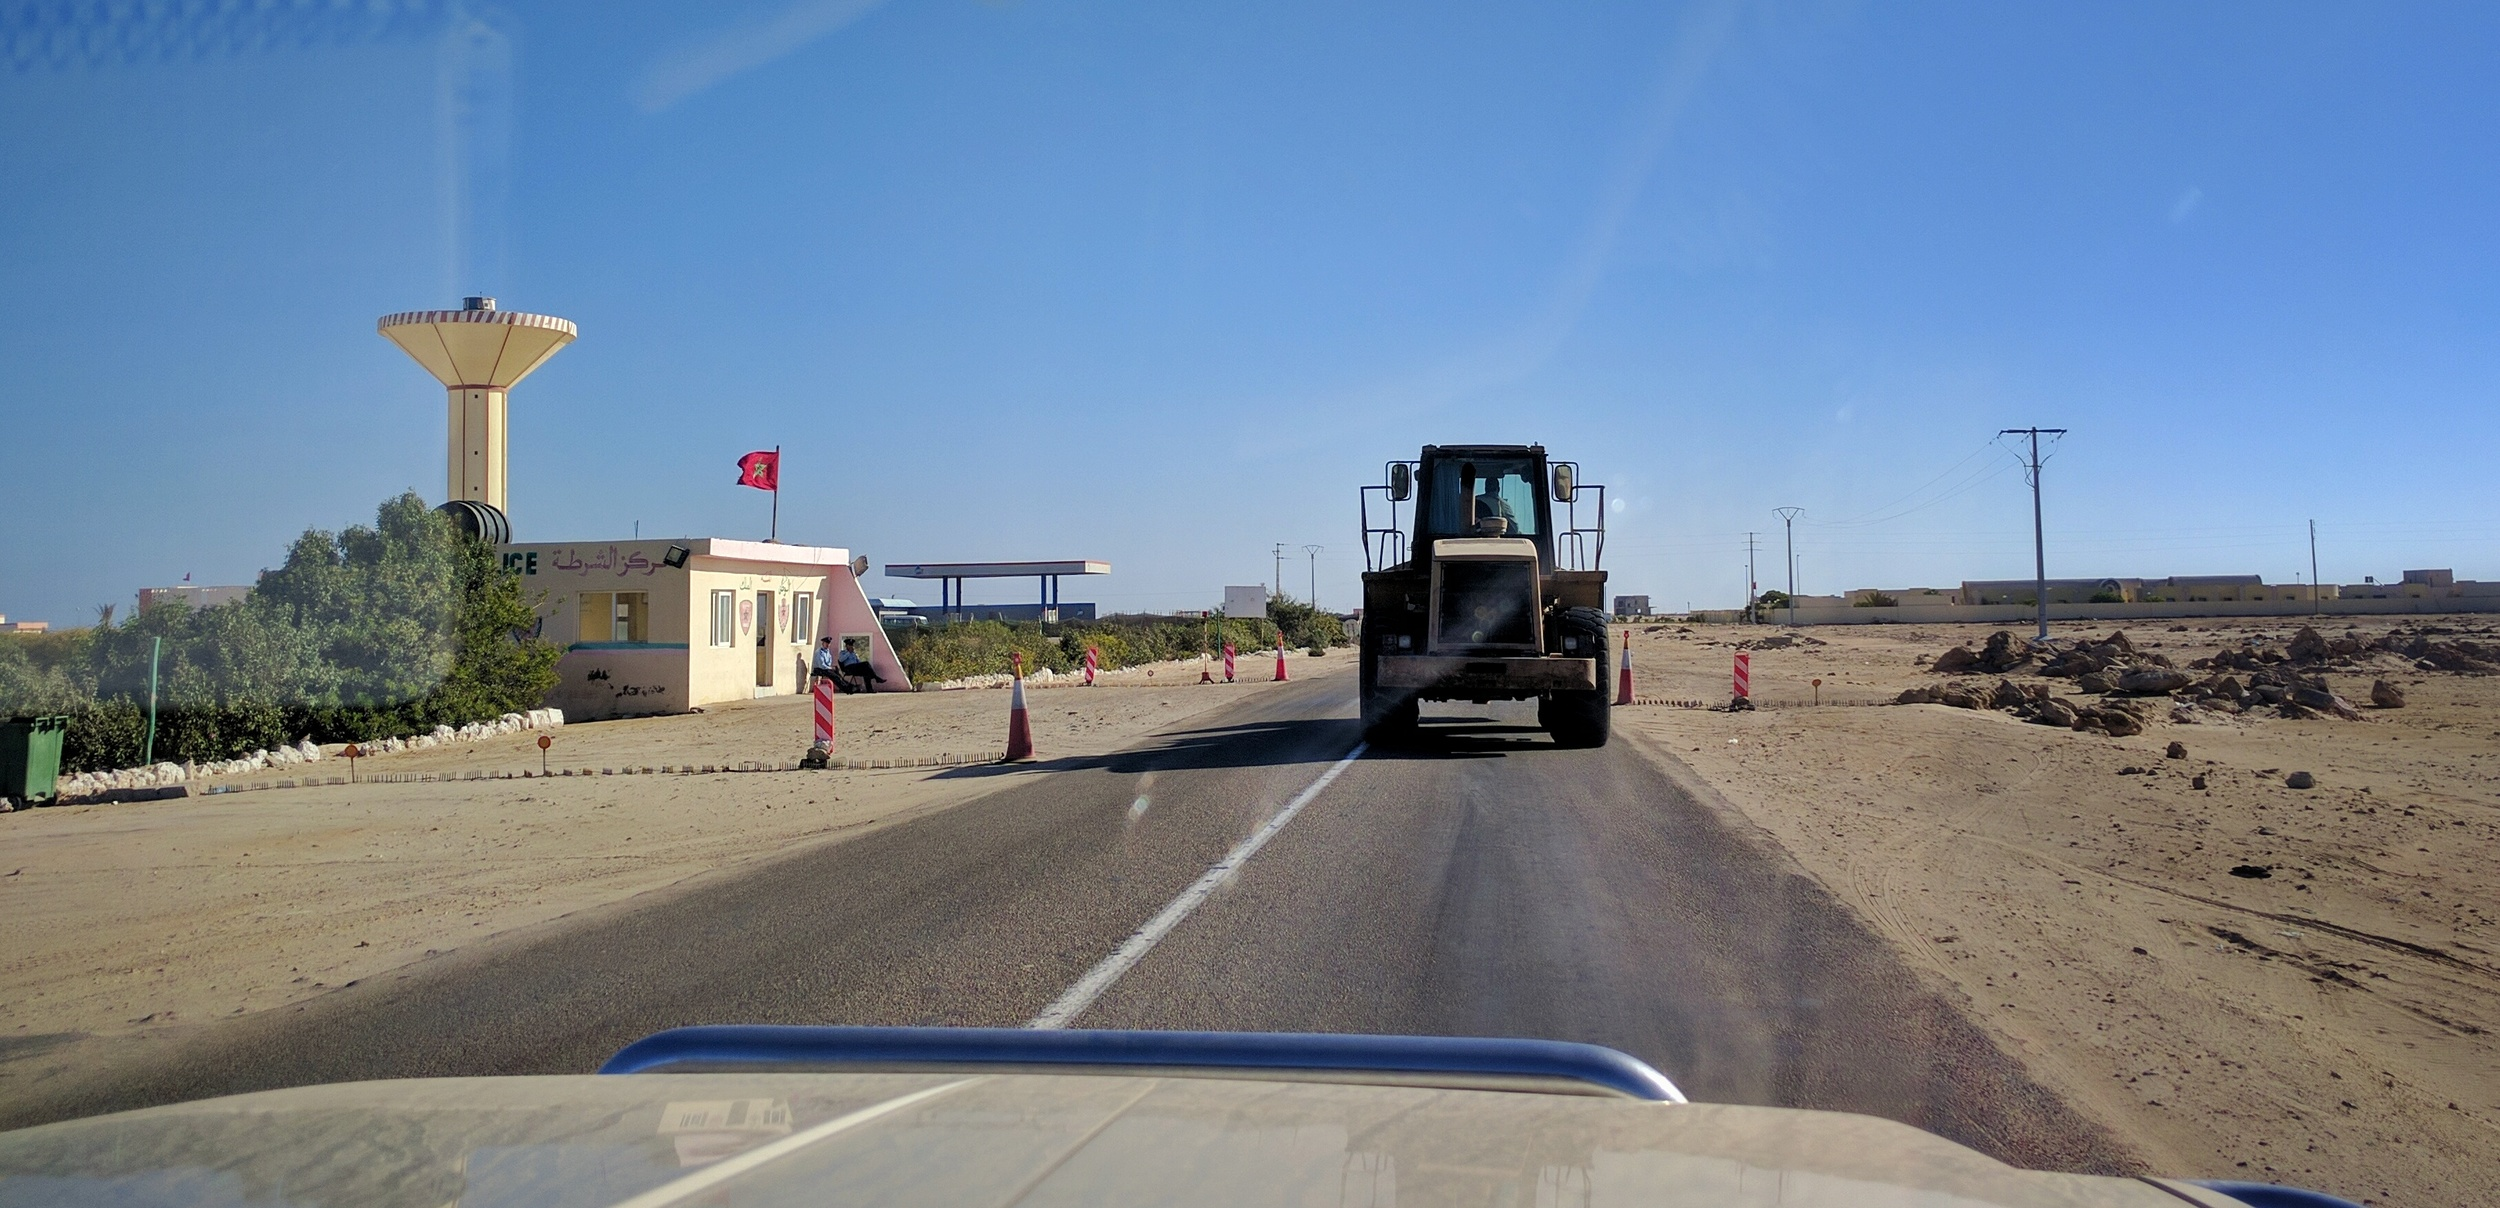 Moroccan police checkpoint, a hitchhiker's dream.